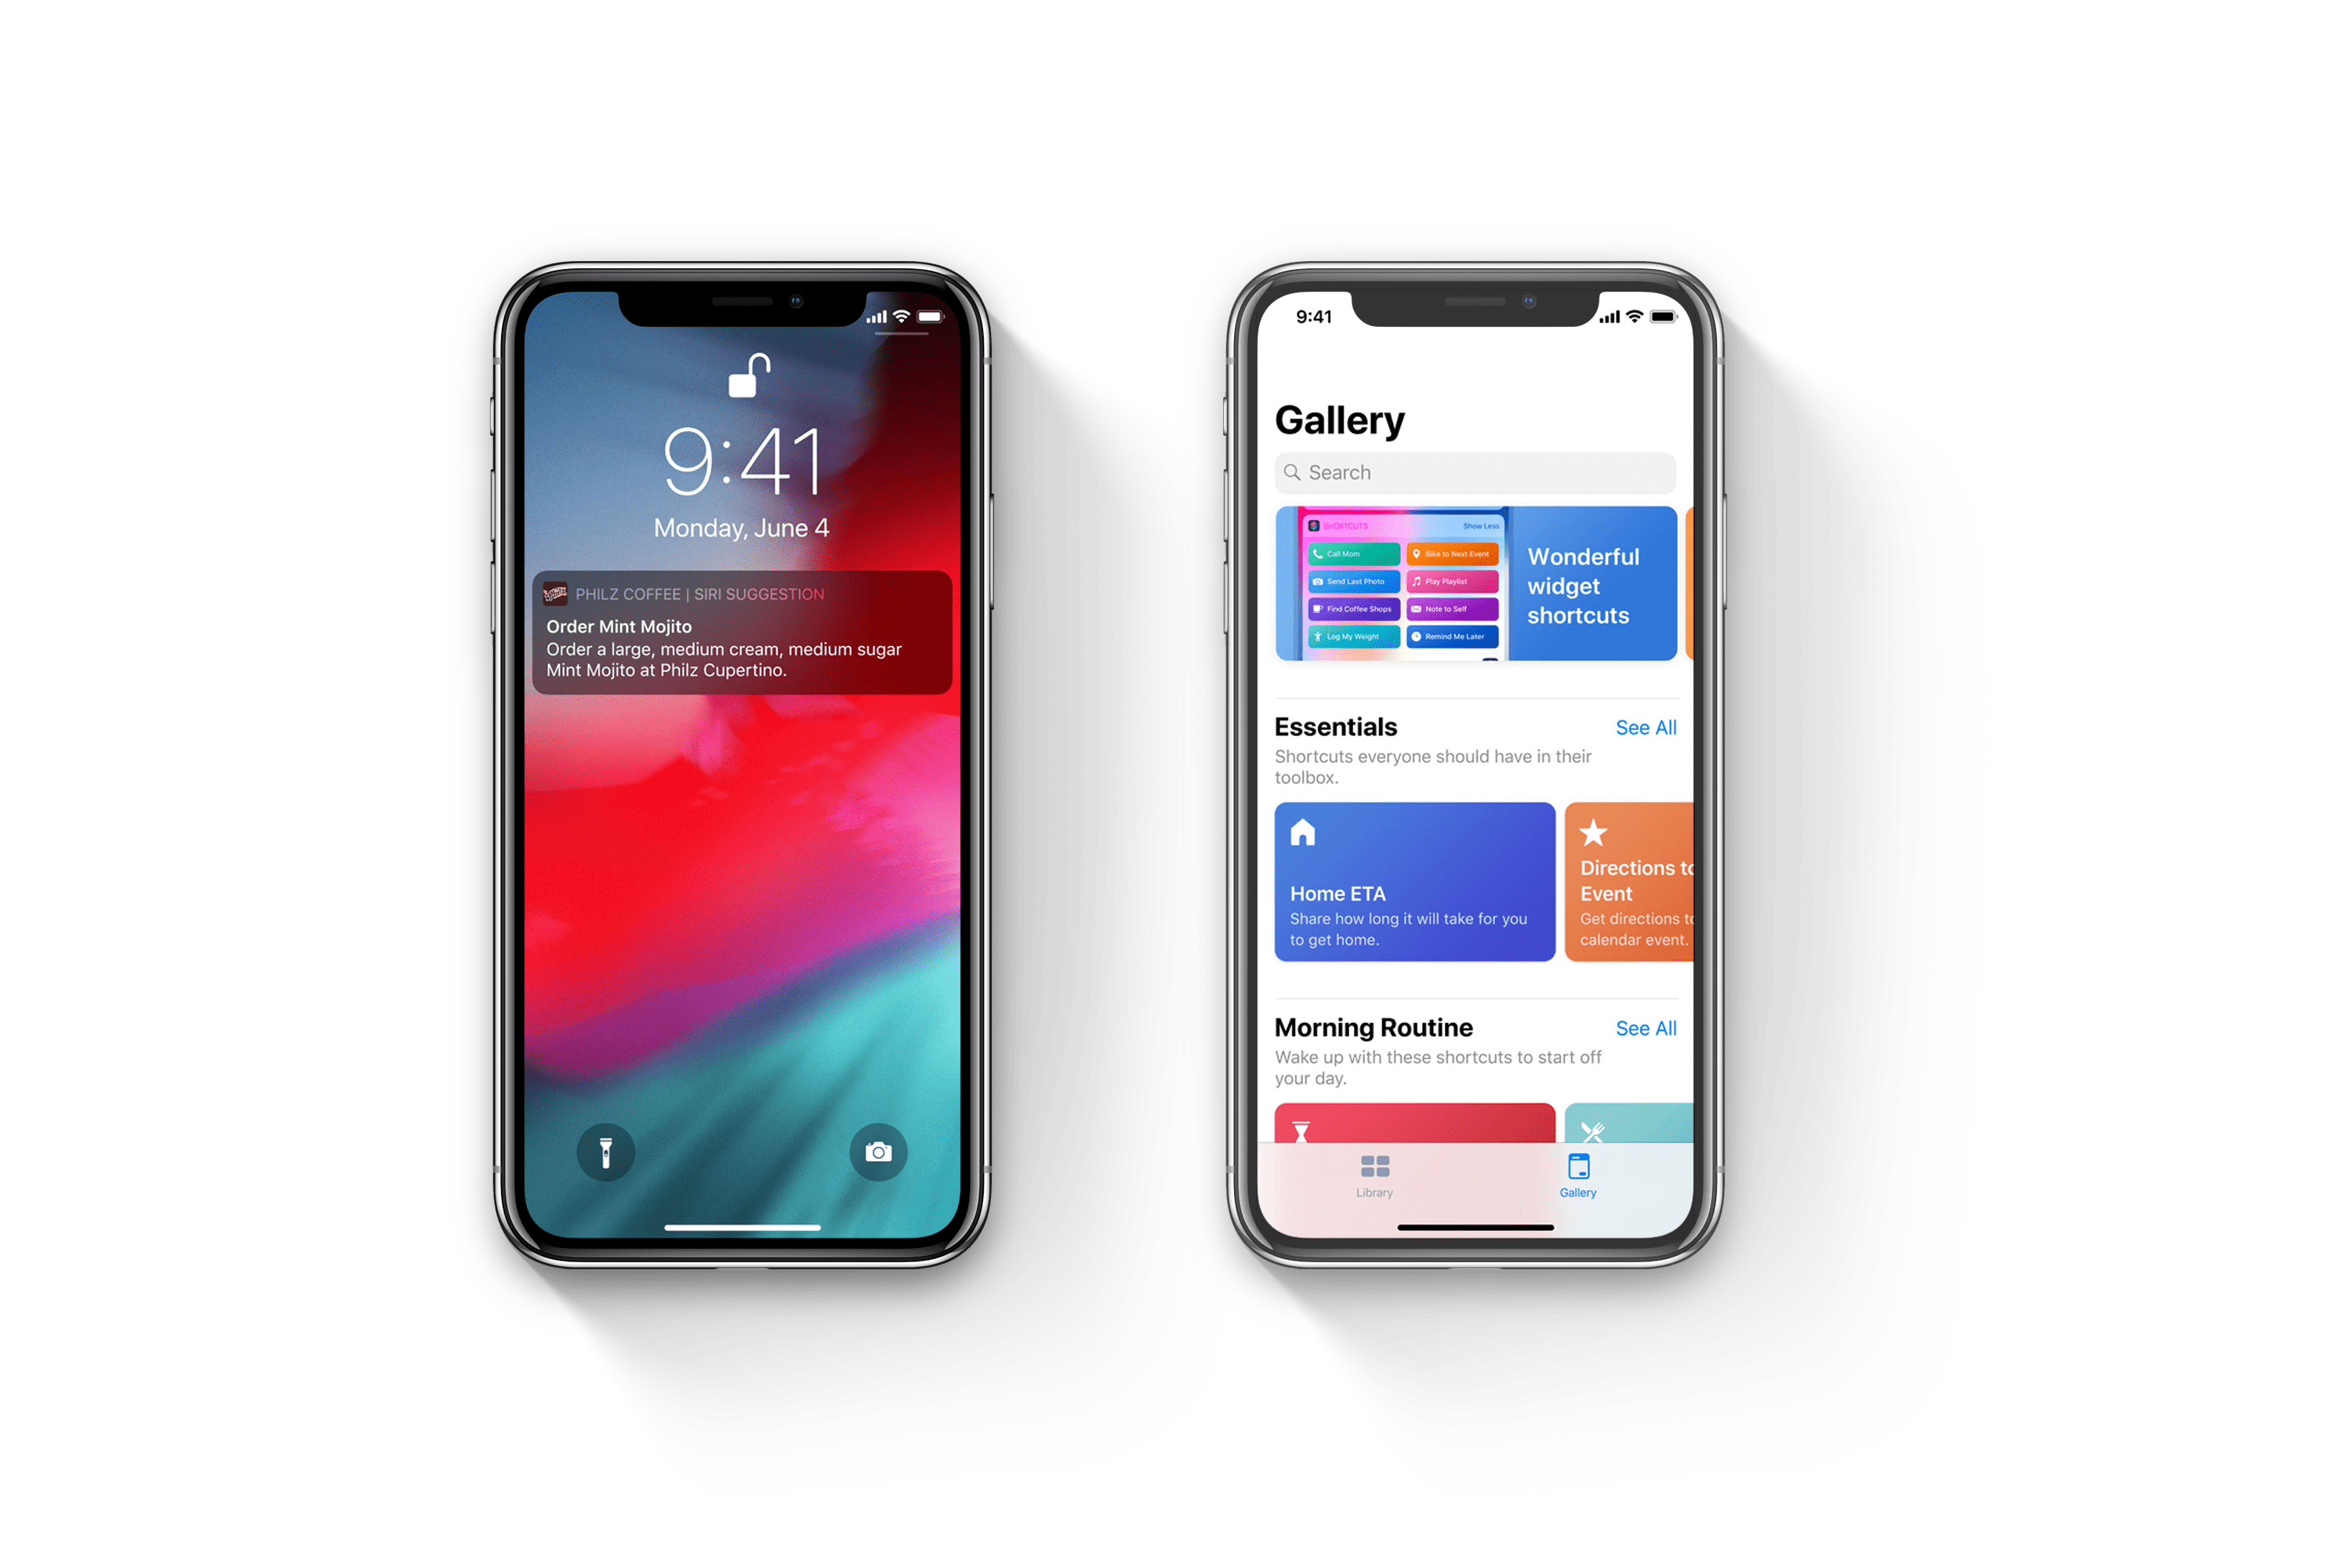 Siri Shortcuts in iOS 12